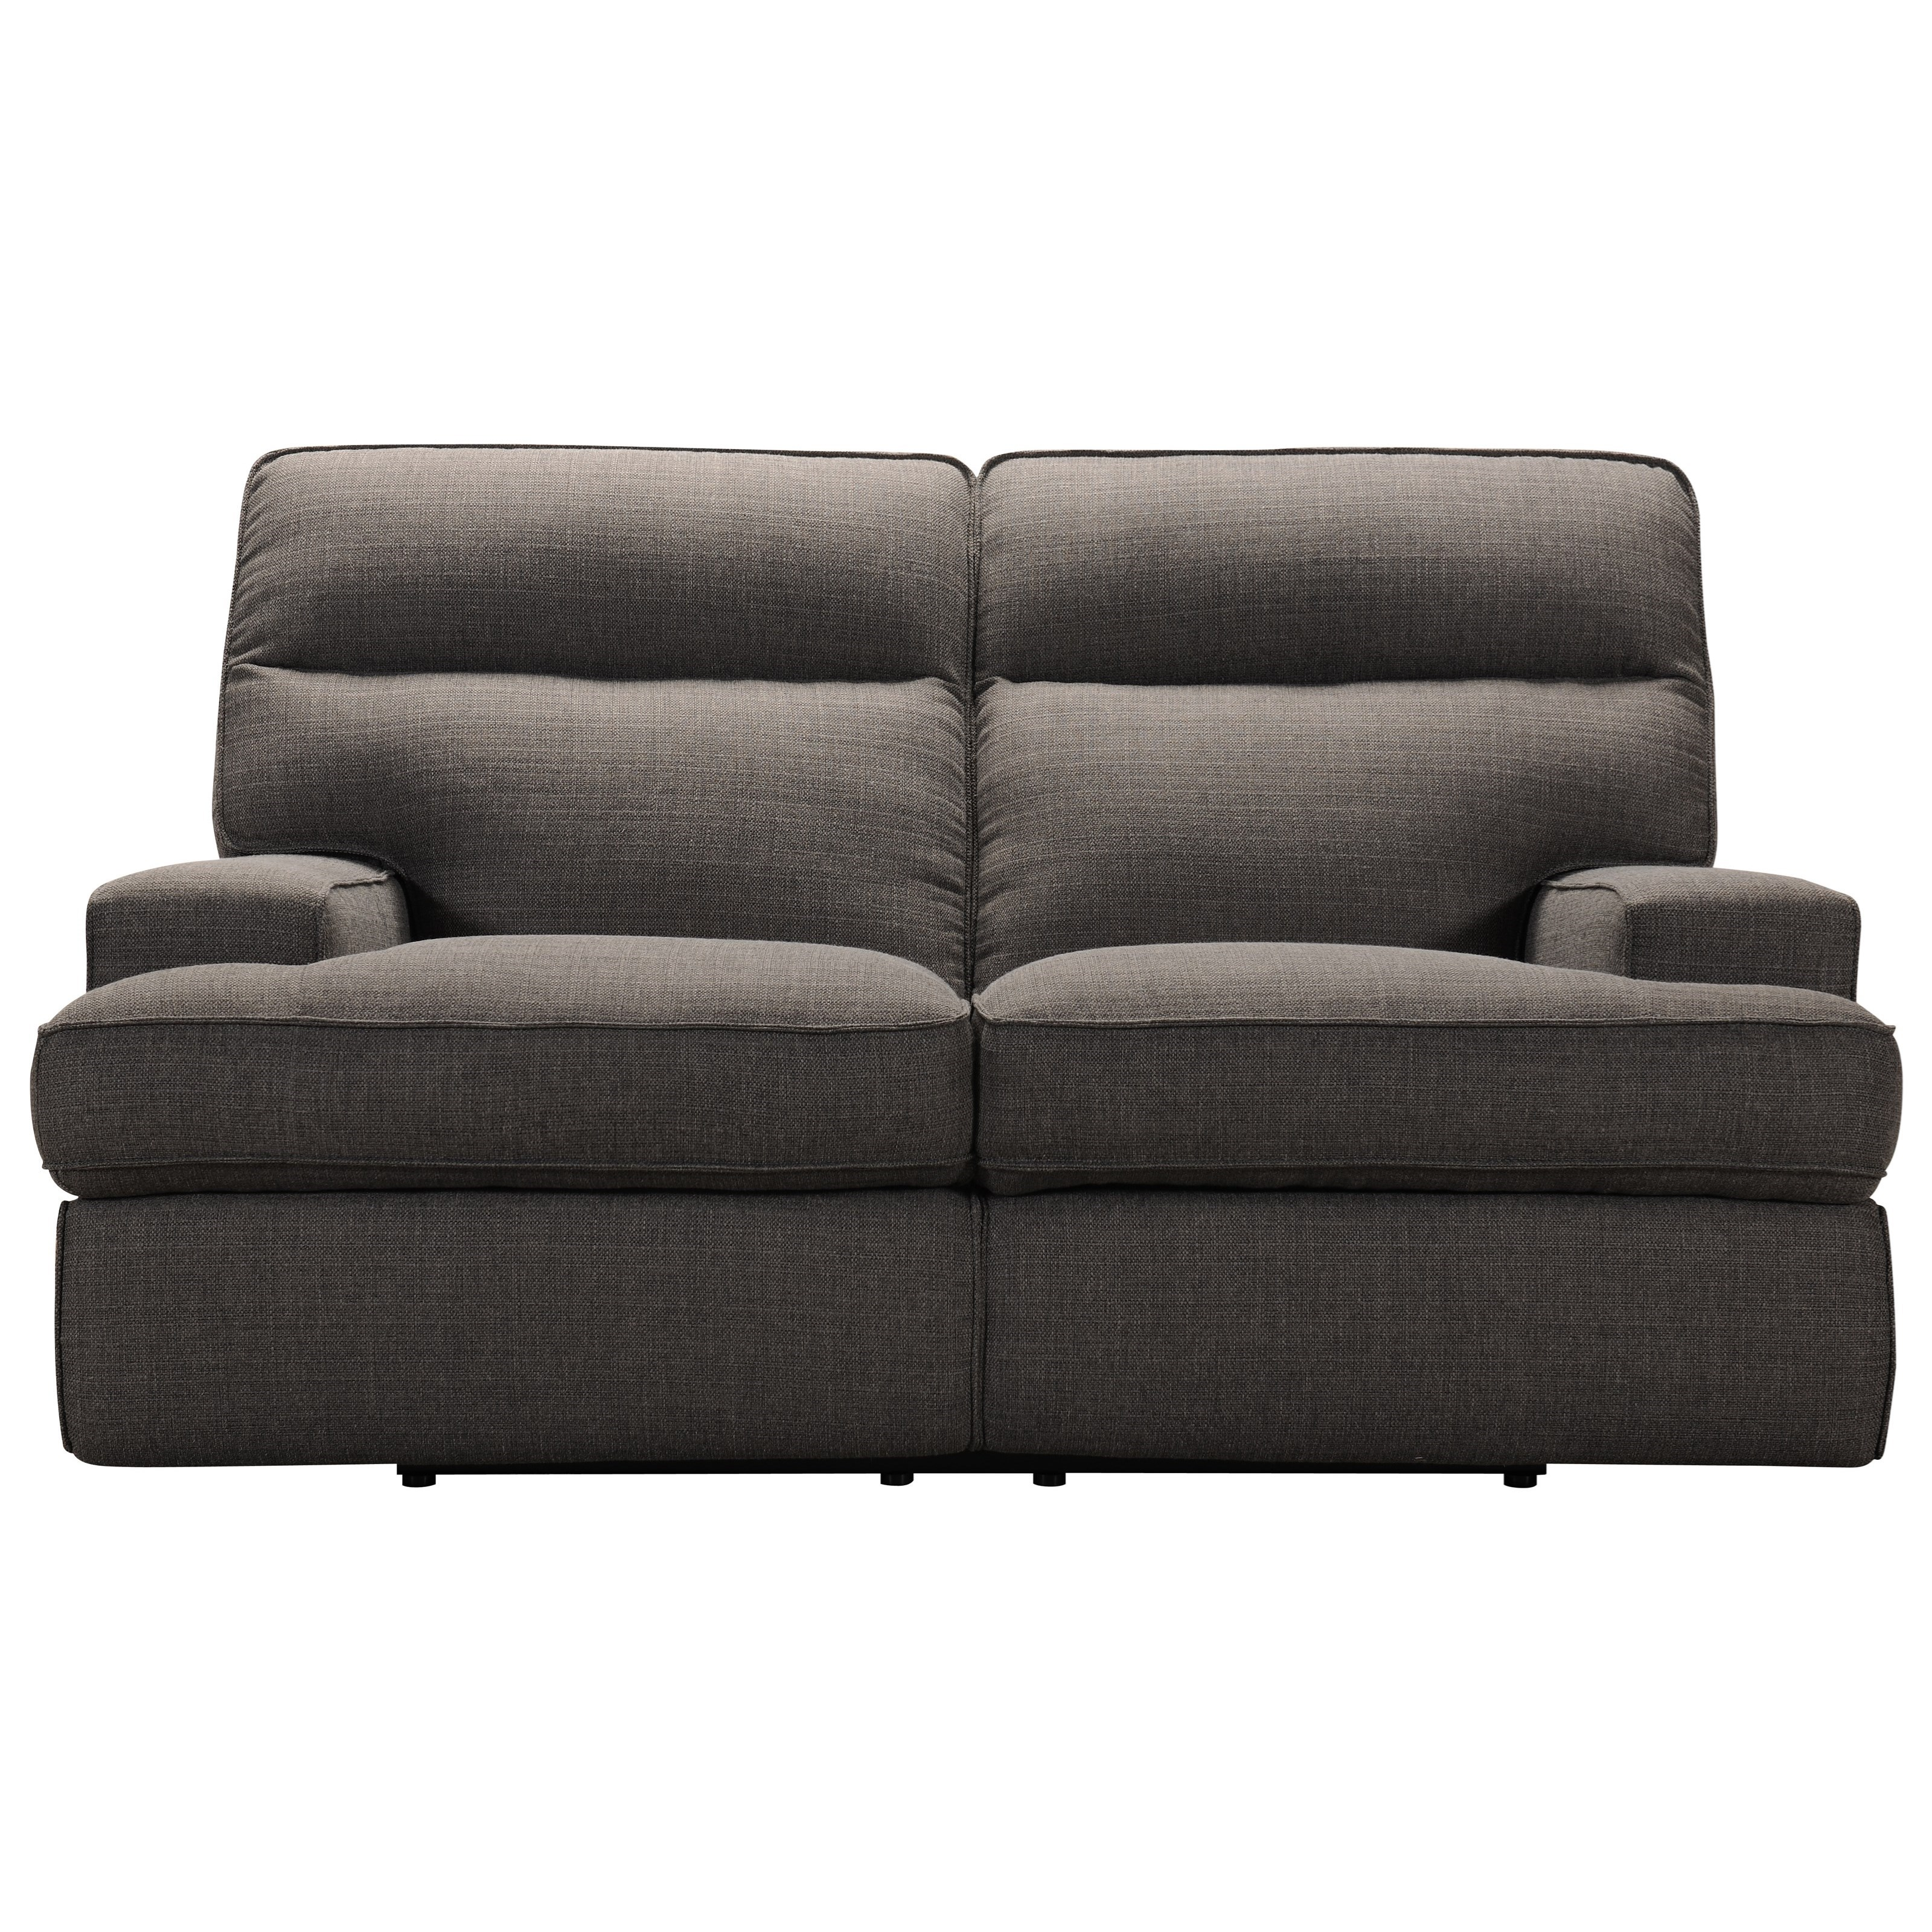 32146 Power Reclining Loveseat w/ Power Headrest by Violino at Furniture Superstore - Rochester, MN